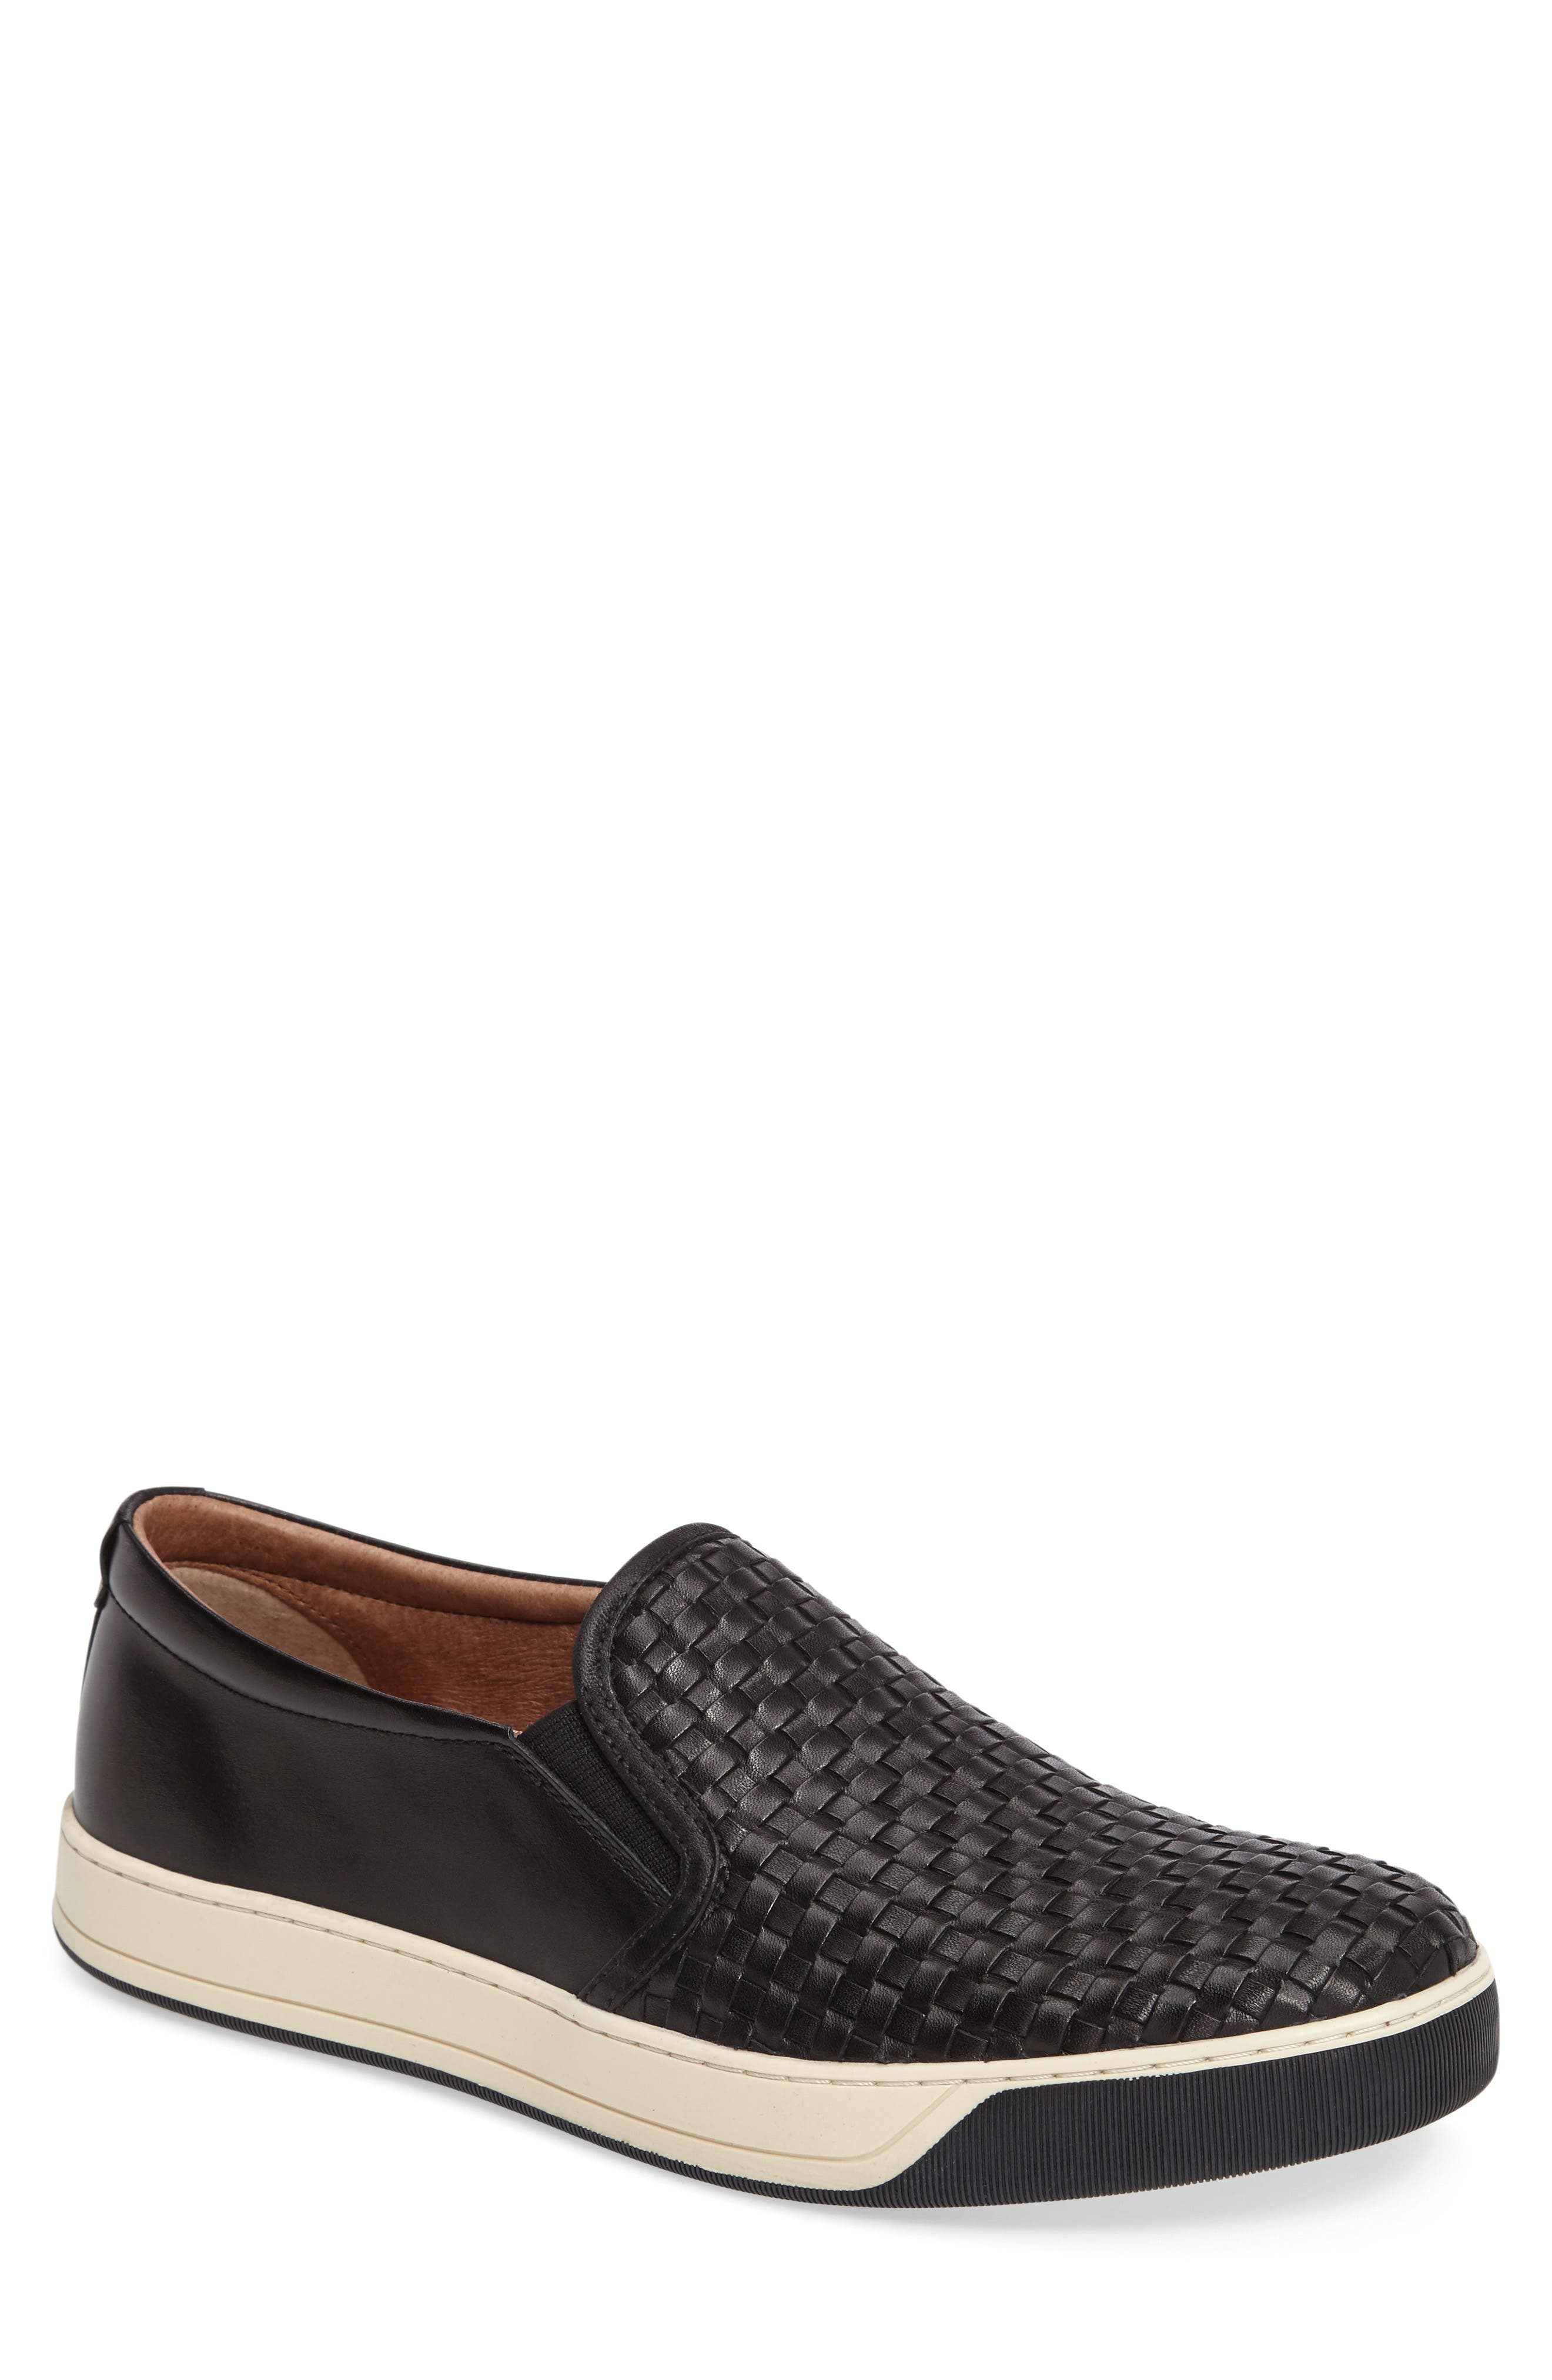 J&M 1850 Allister Slip-On Sneaker, Main, color, BLACK LEATHER